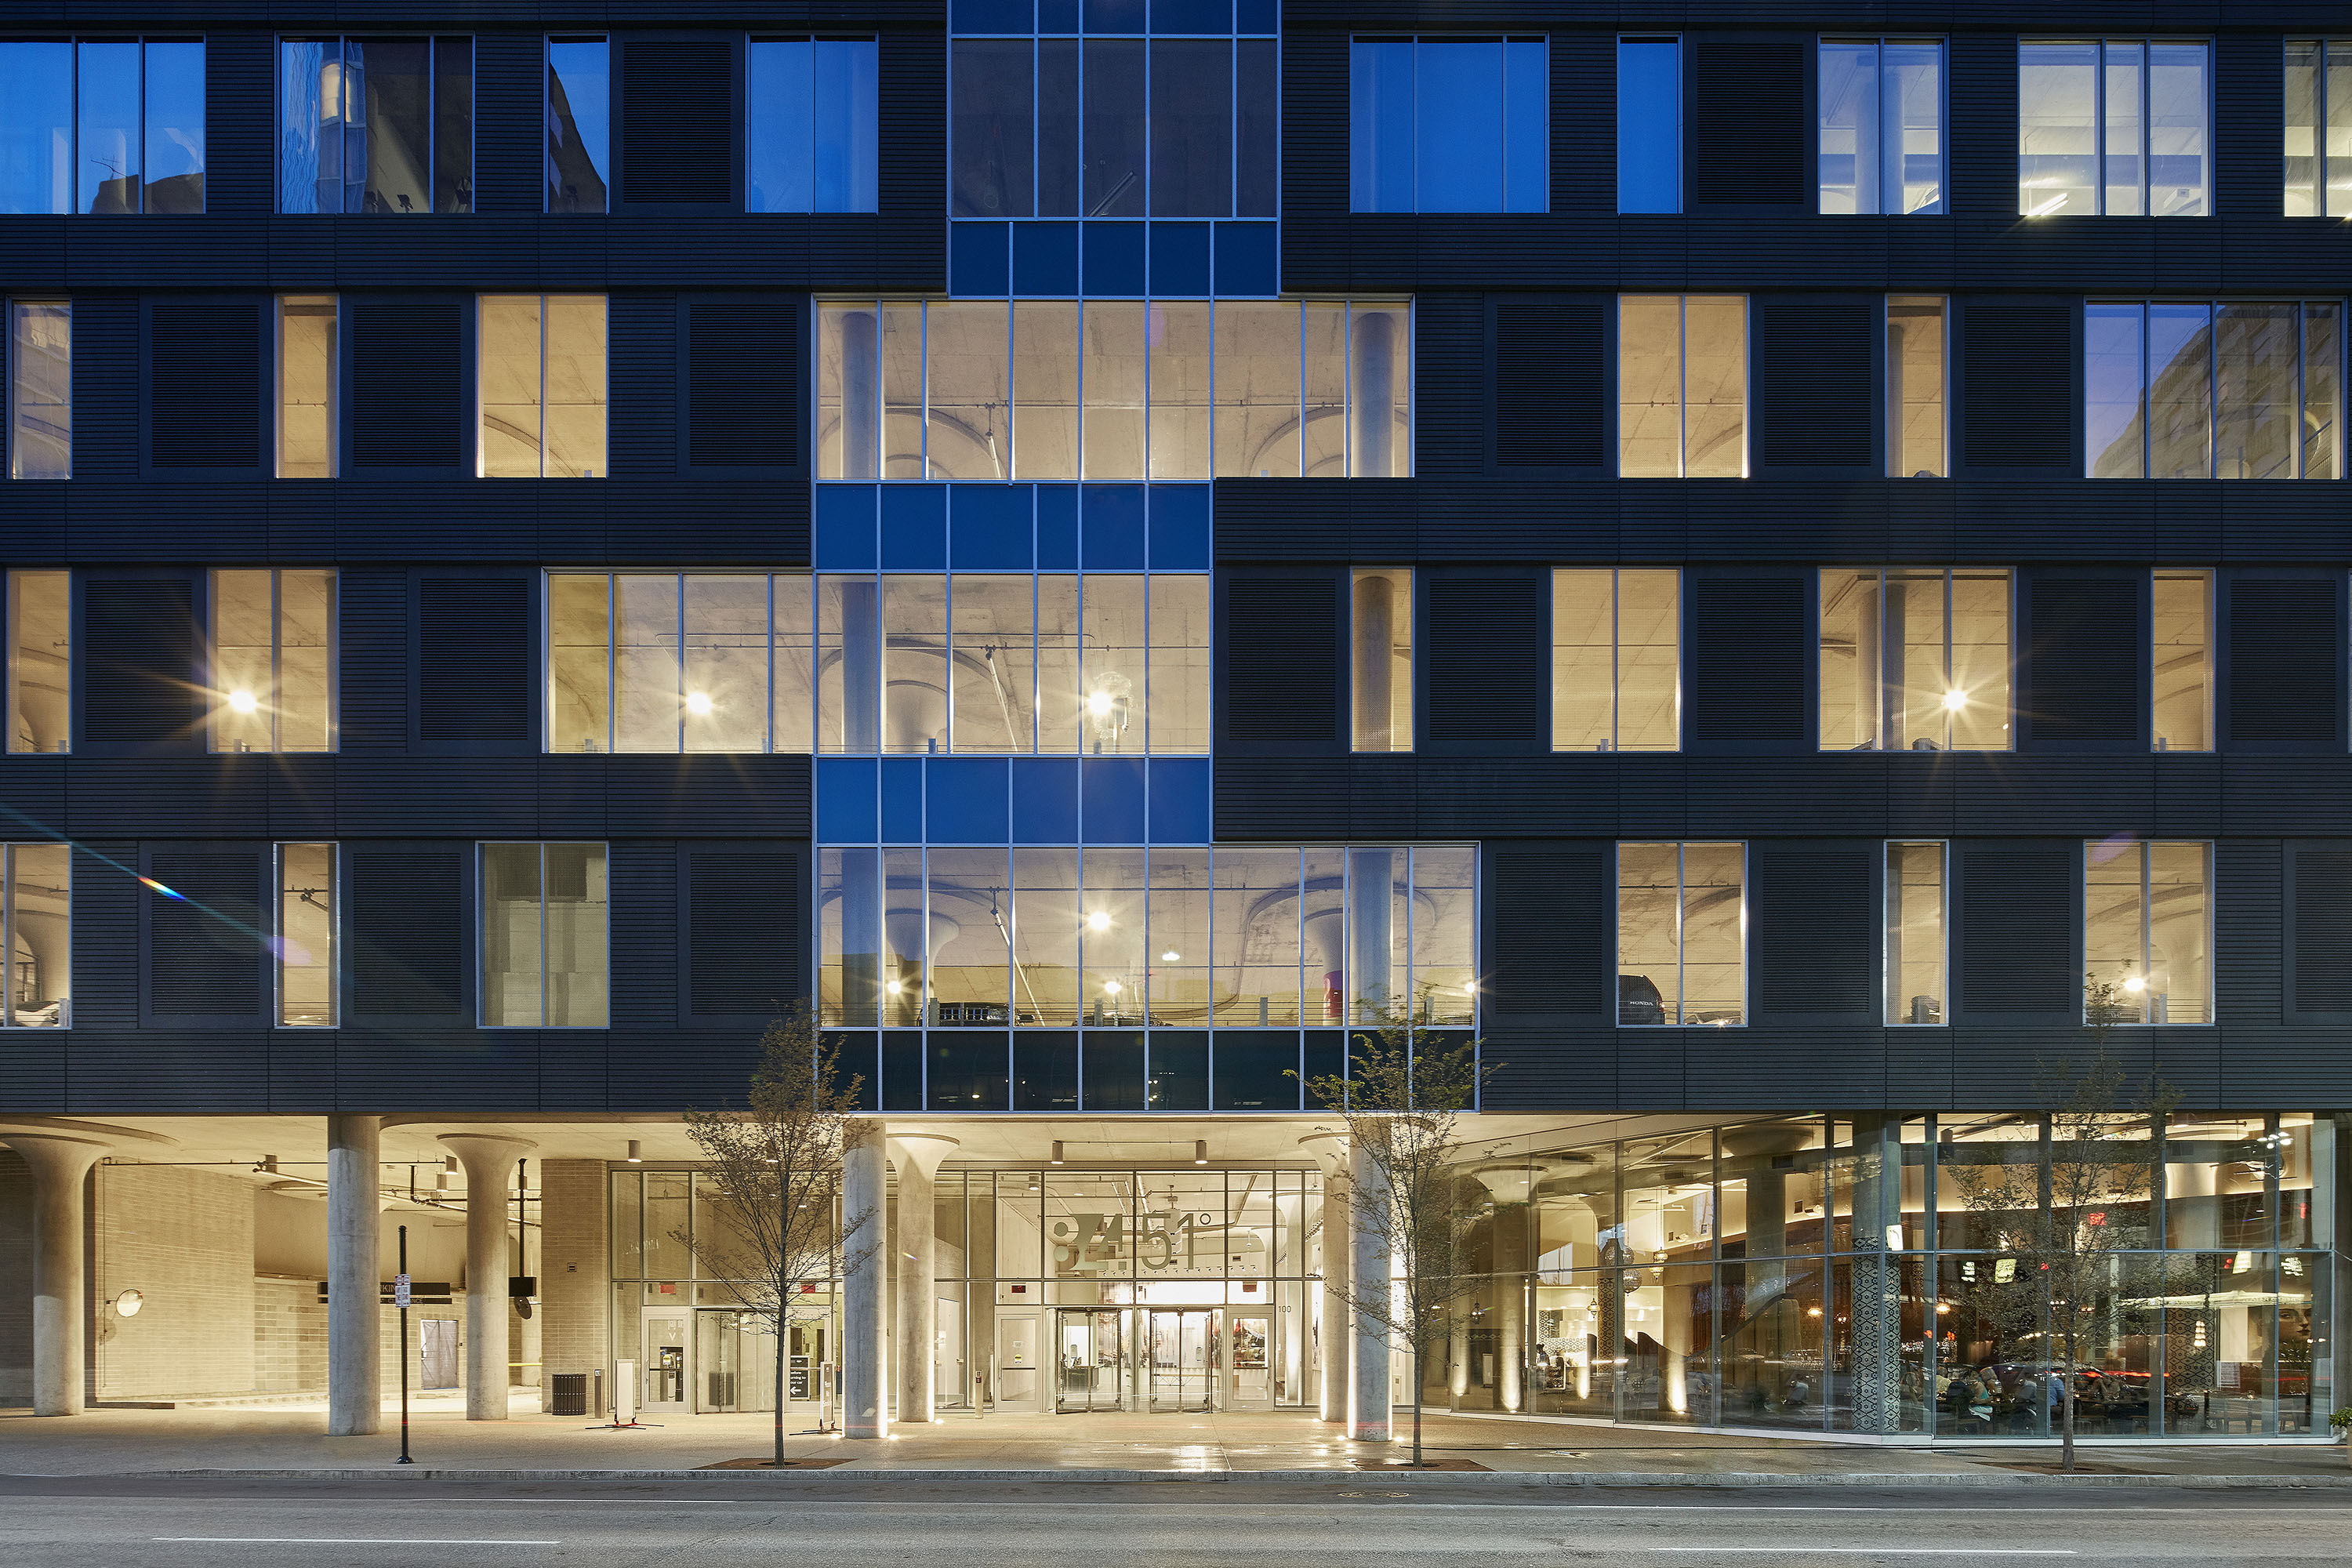 Parking Garages Are Getting A Second Life As Places For